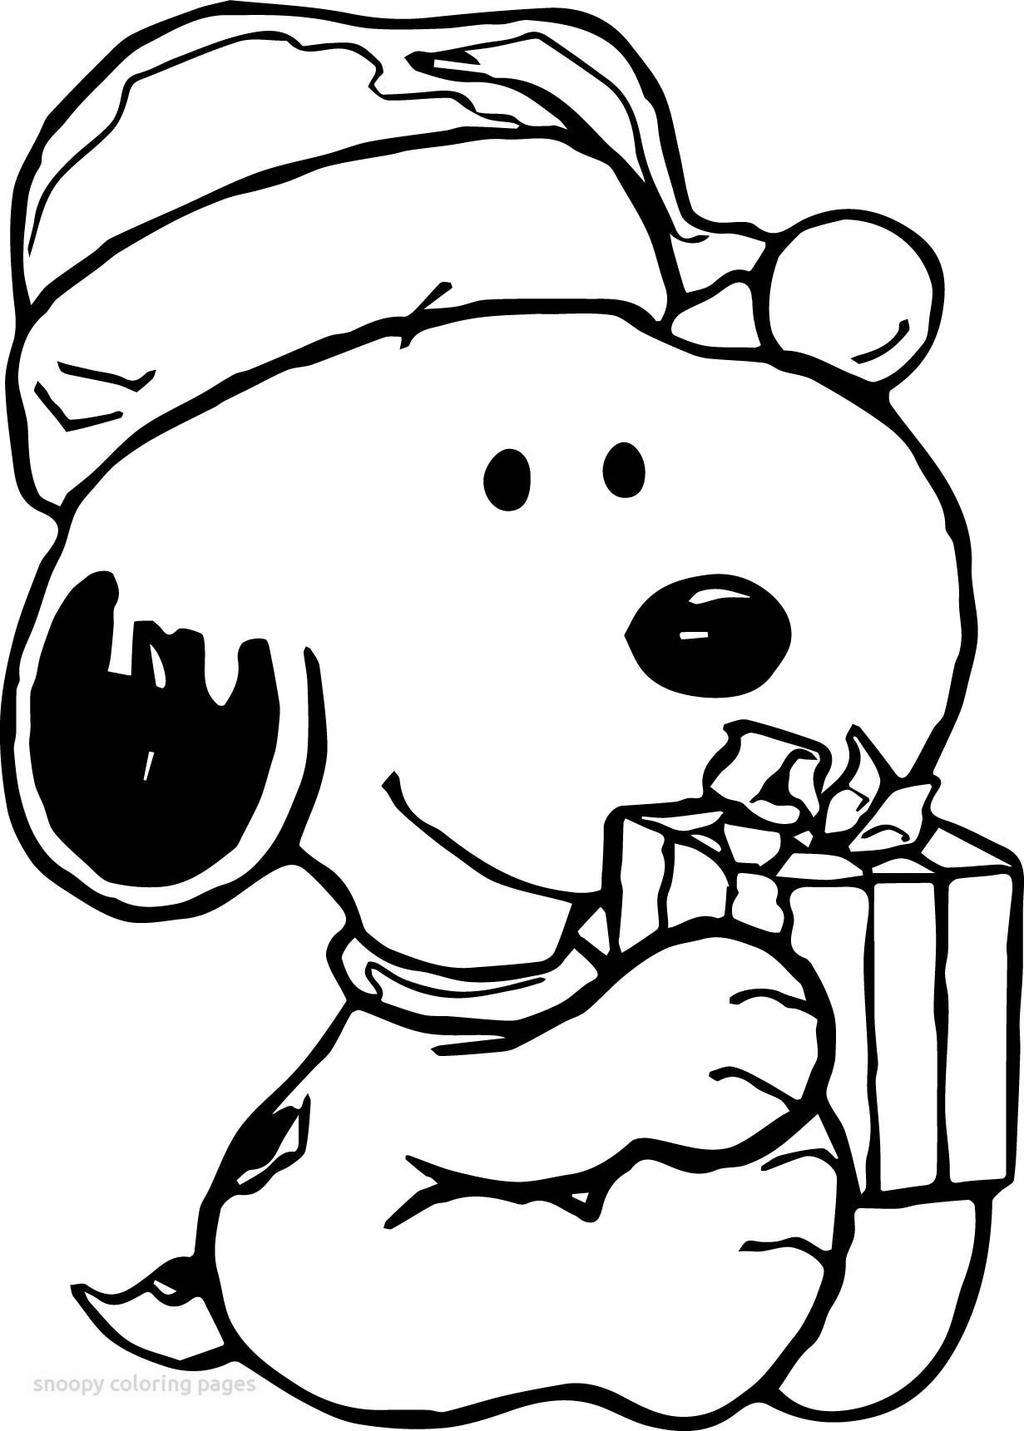 Snoopy And Woodstock Coloring Pages Colouring Aprenda Free